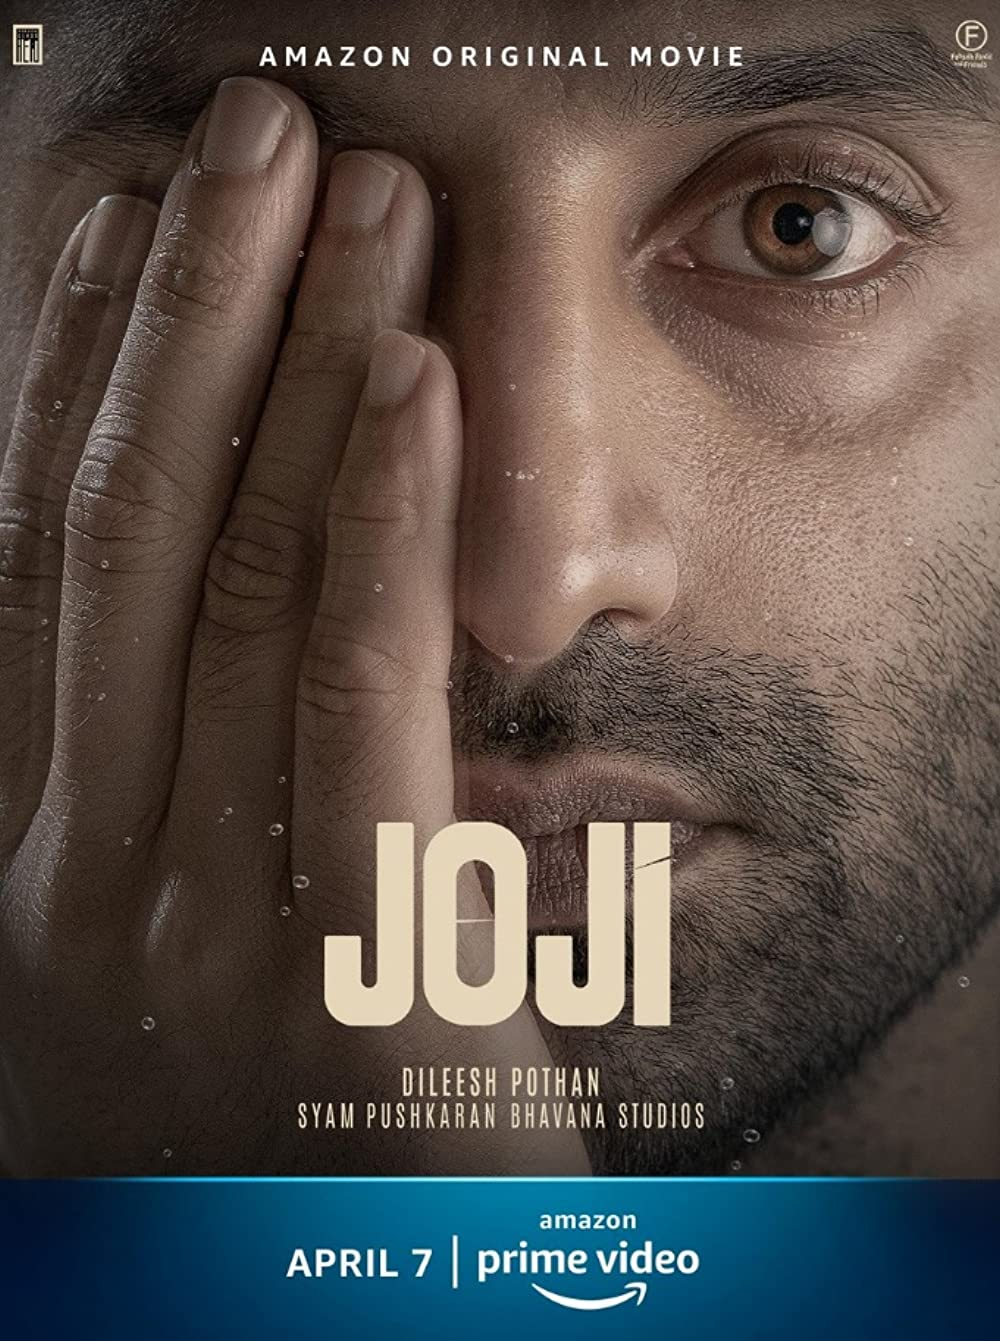 Joji 2021 Malayalam 480p | 720p AMZN HDRip 355MB – MoviesBaba – Movies TV Shows Online Watch And Download